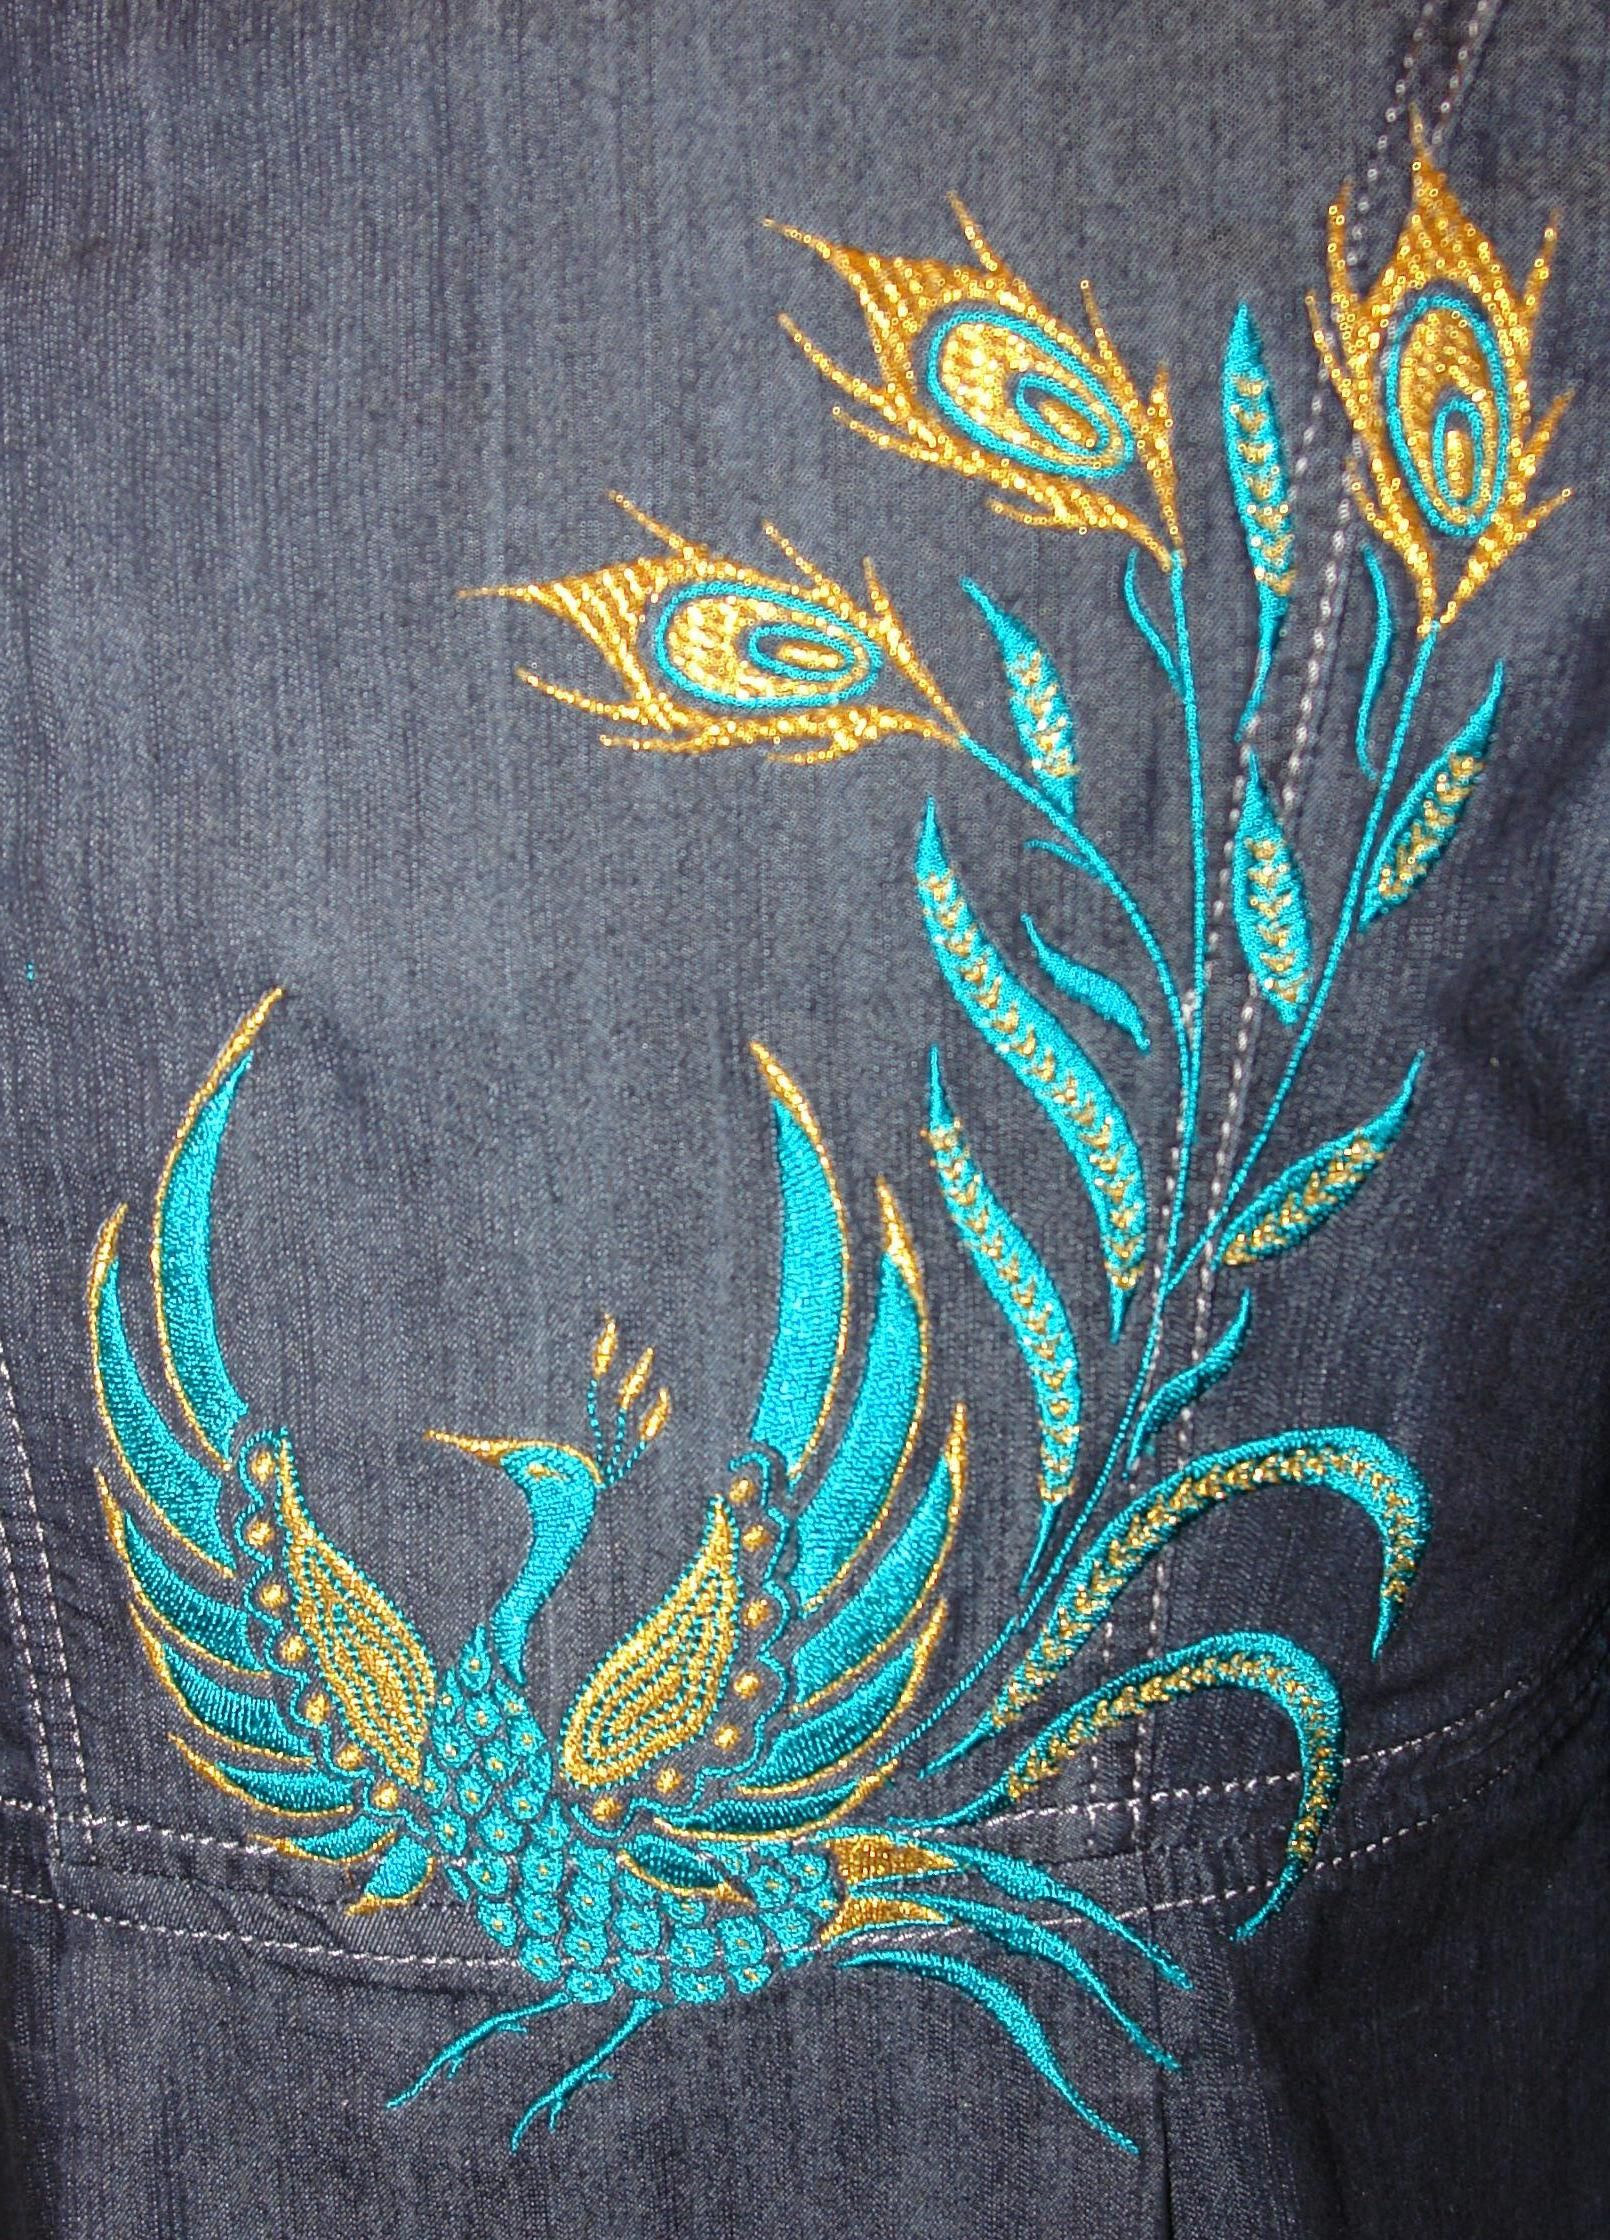 Free Embroidery Designs, Cute Embroidery Designs | sewing ...